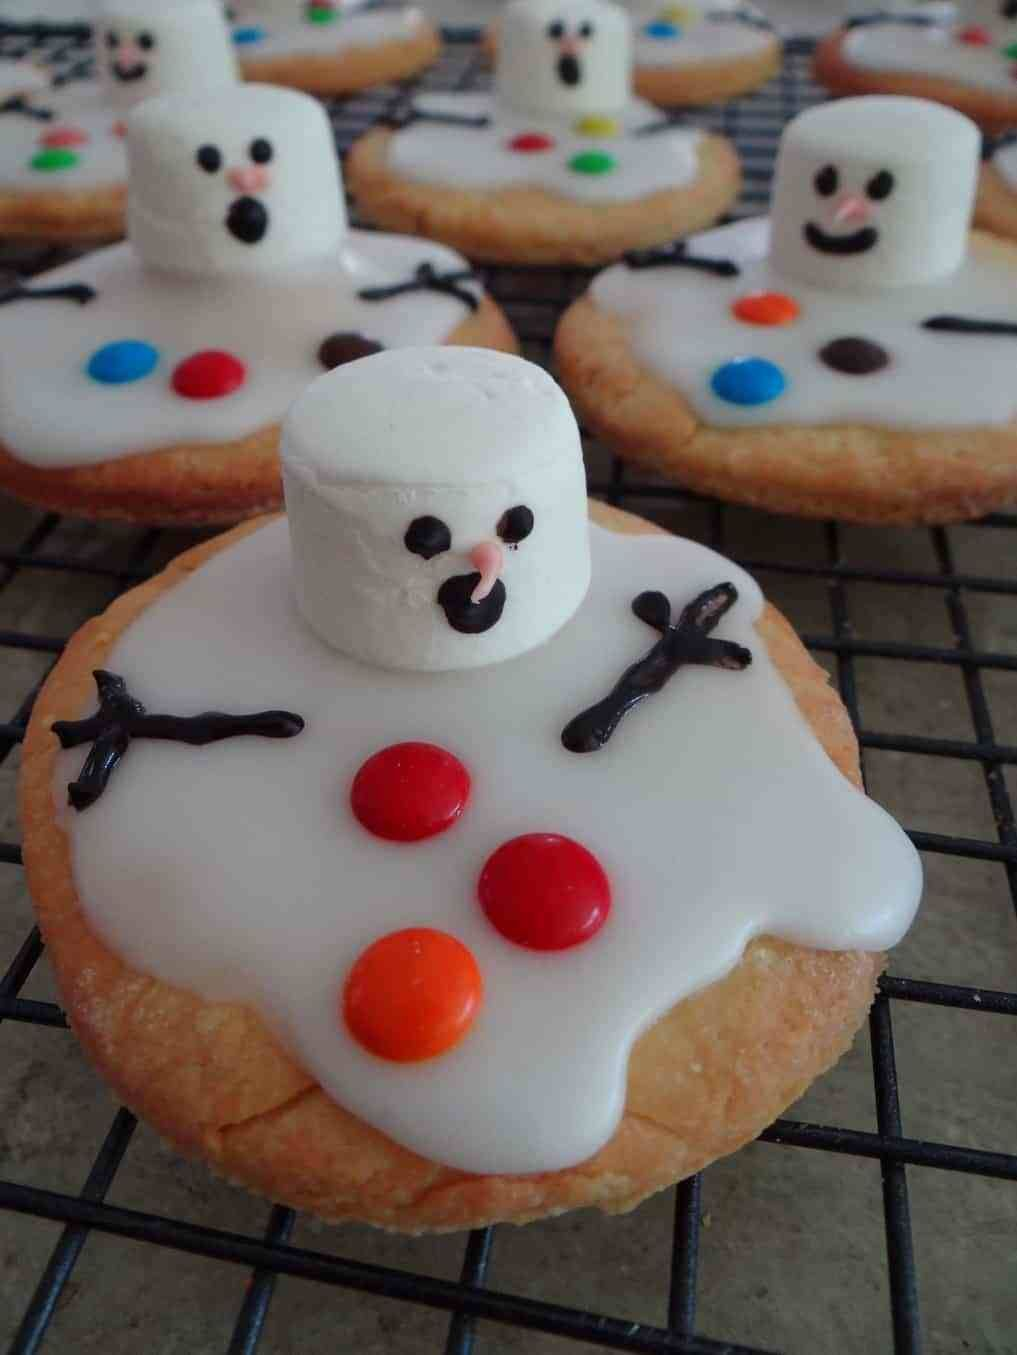 11 fun ideas for Christmas cooking with kids